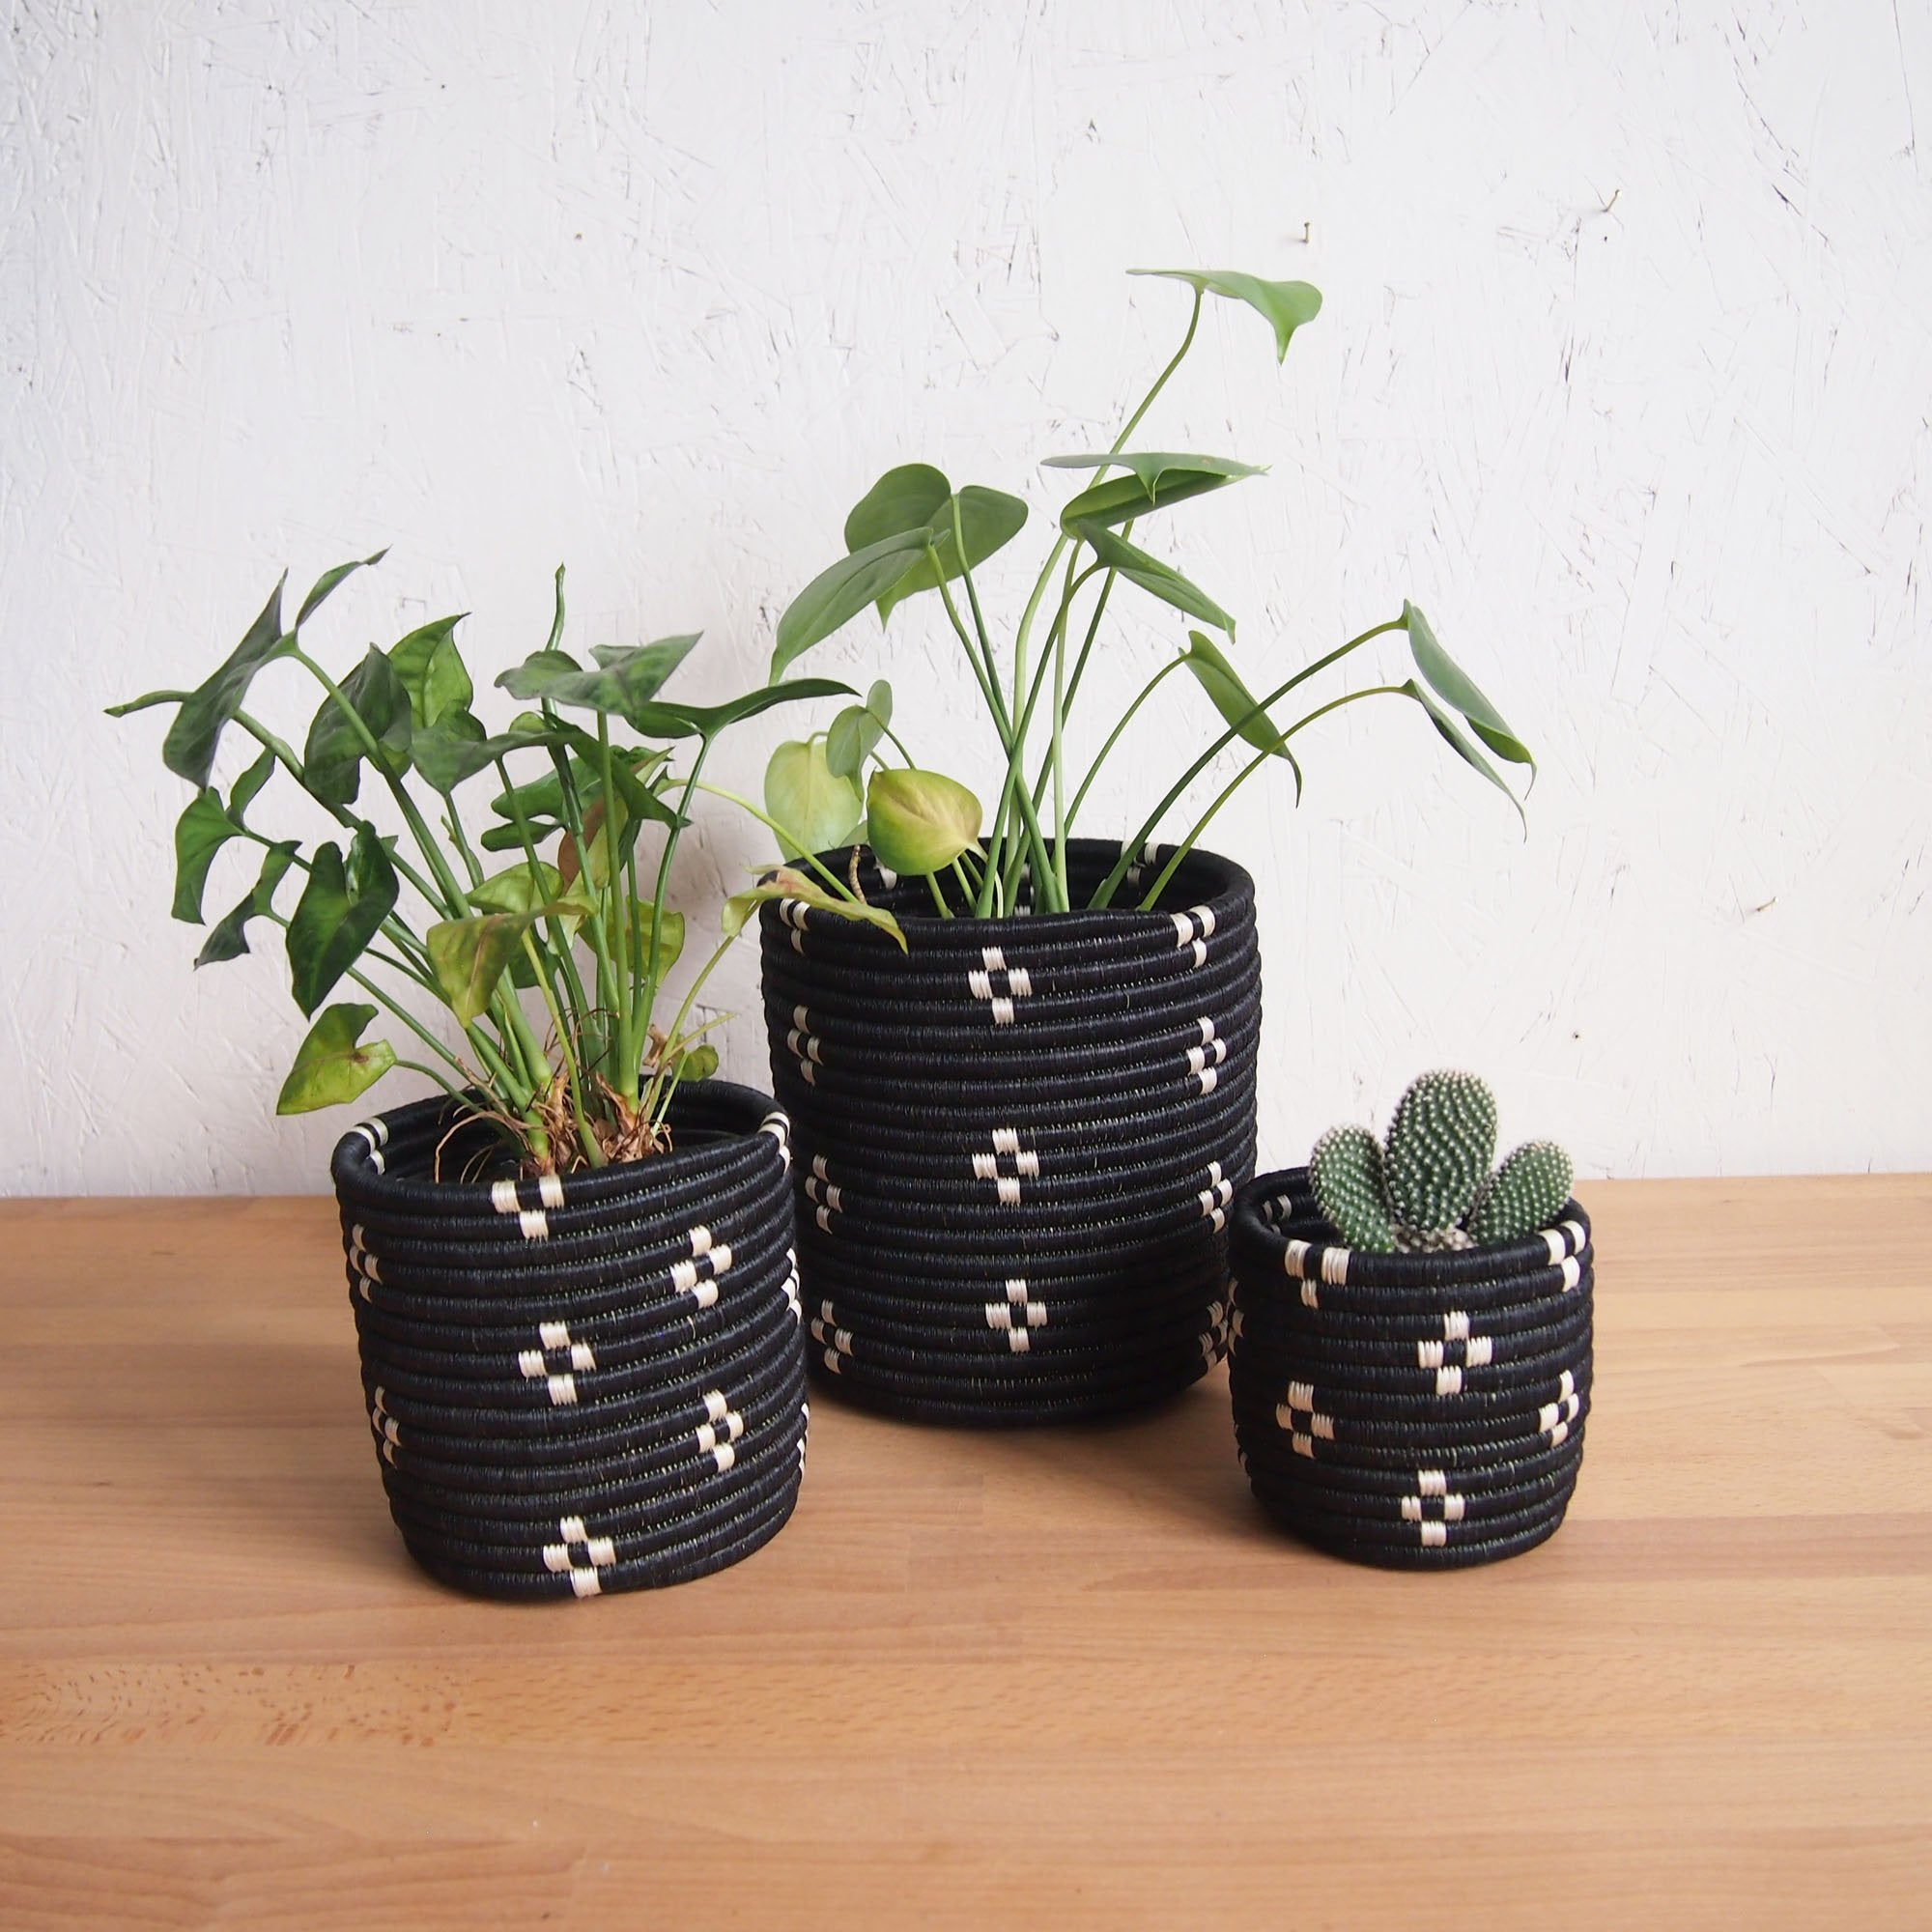 Munazi Planter Baskets